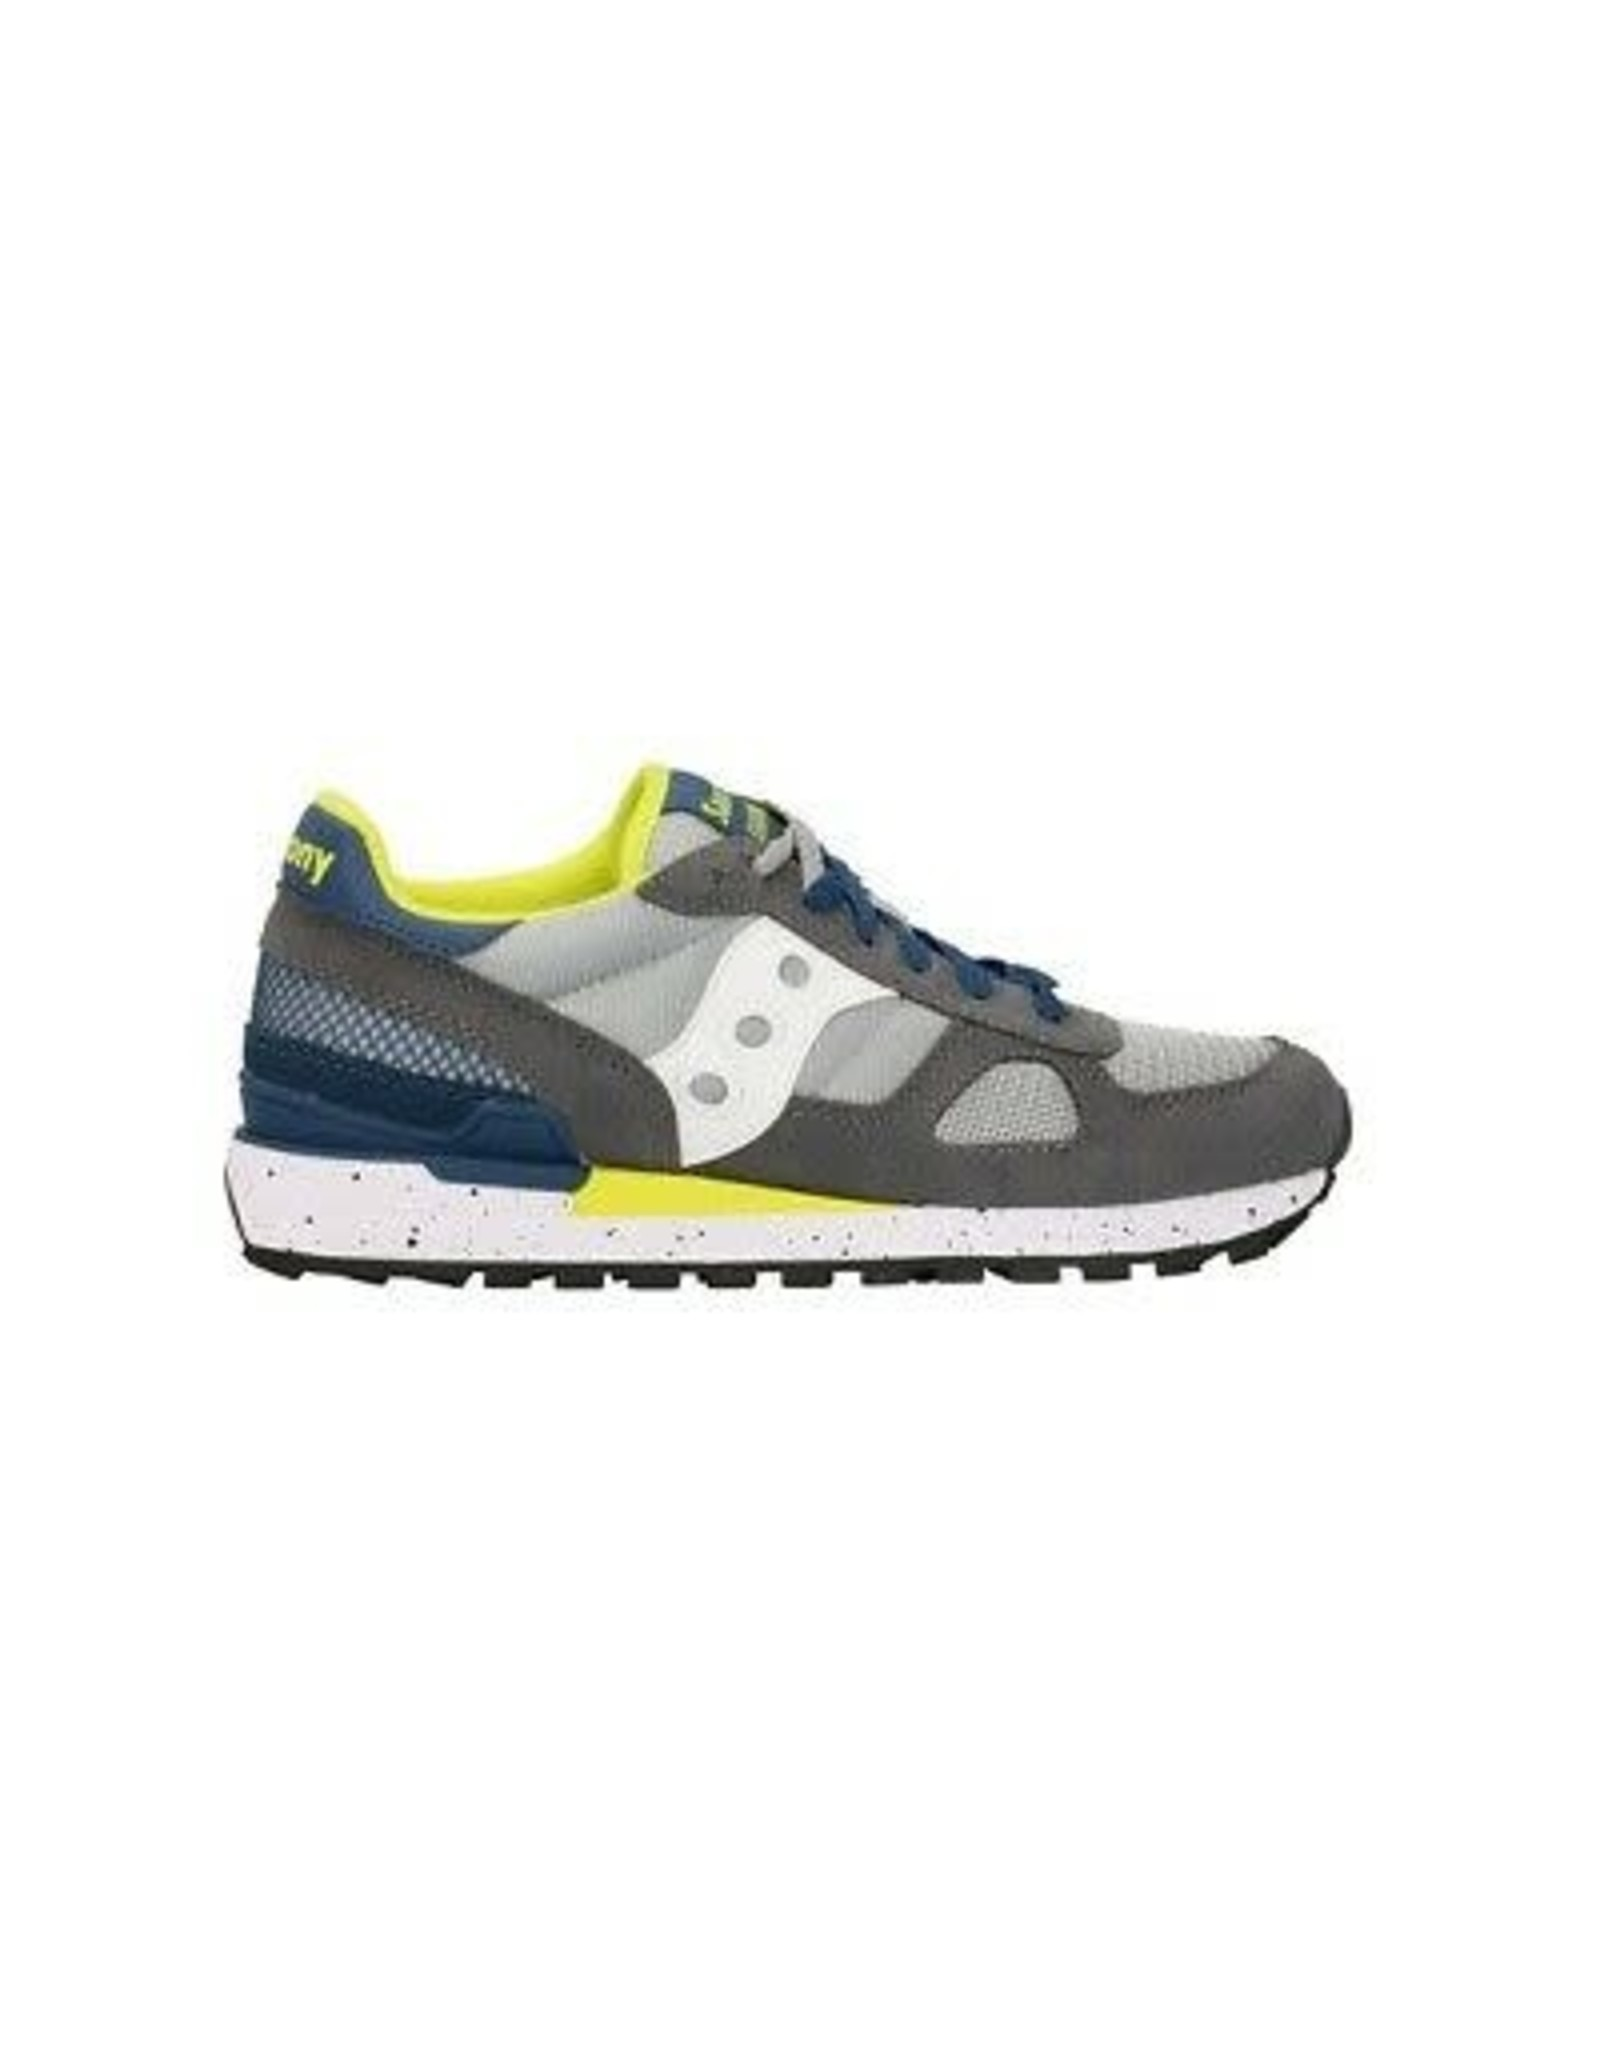 Saucony SS21 Shadow original grey